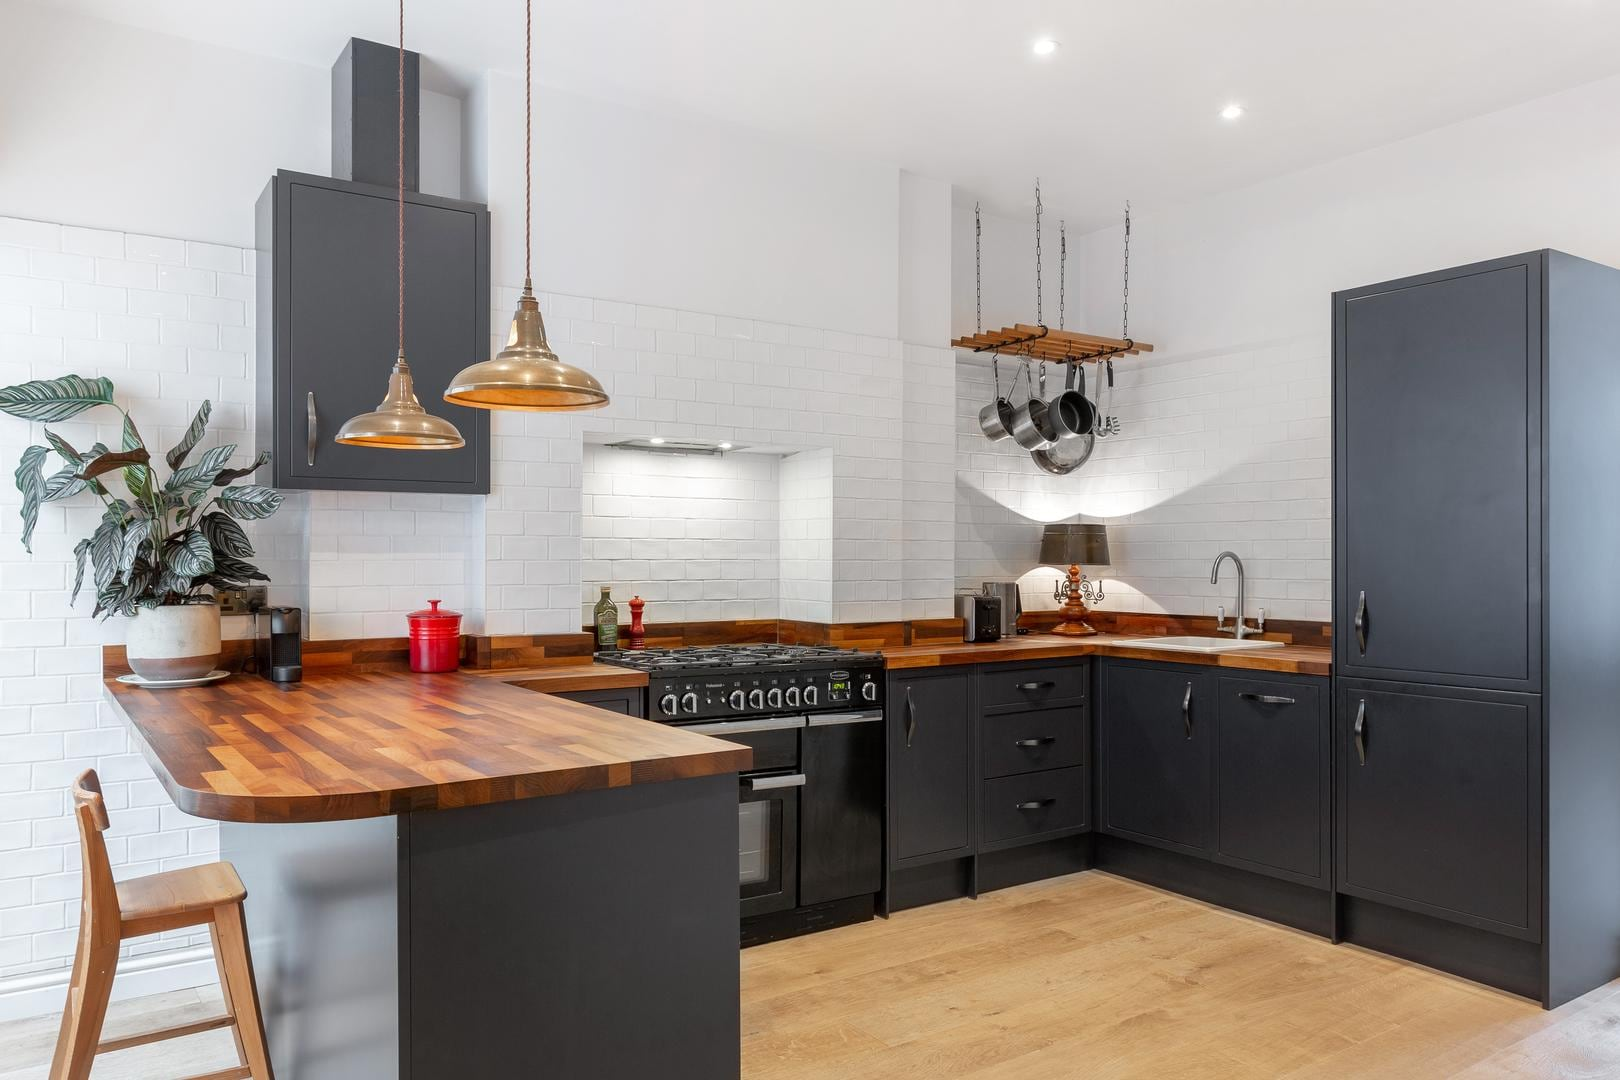 Property Image 1 - Flawlessly Elegant Apartment in Tufnell Park near Tube